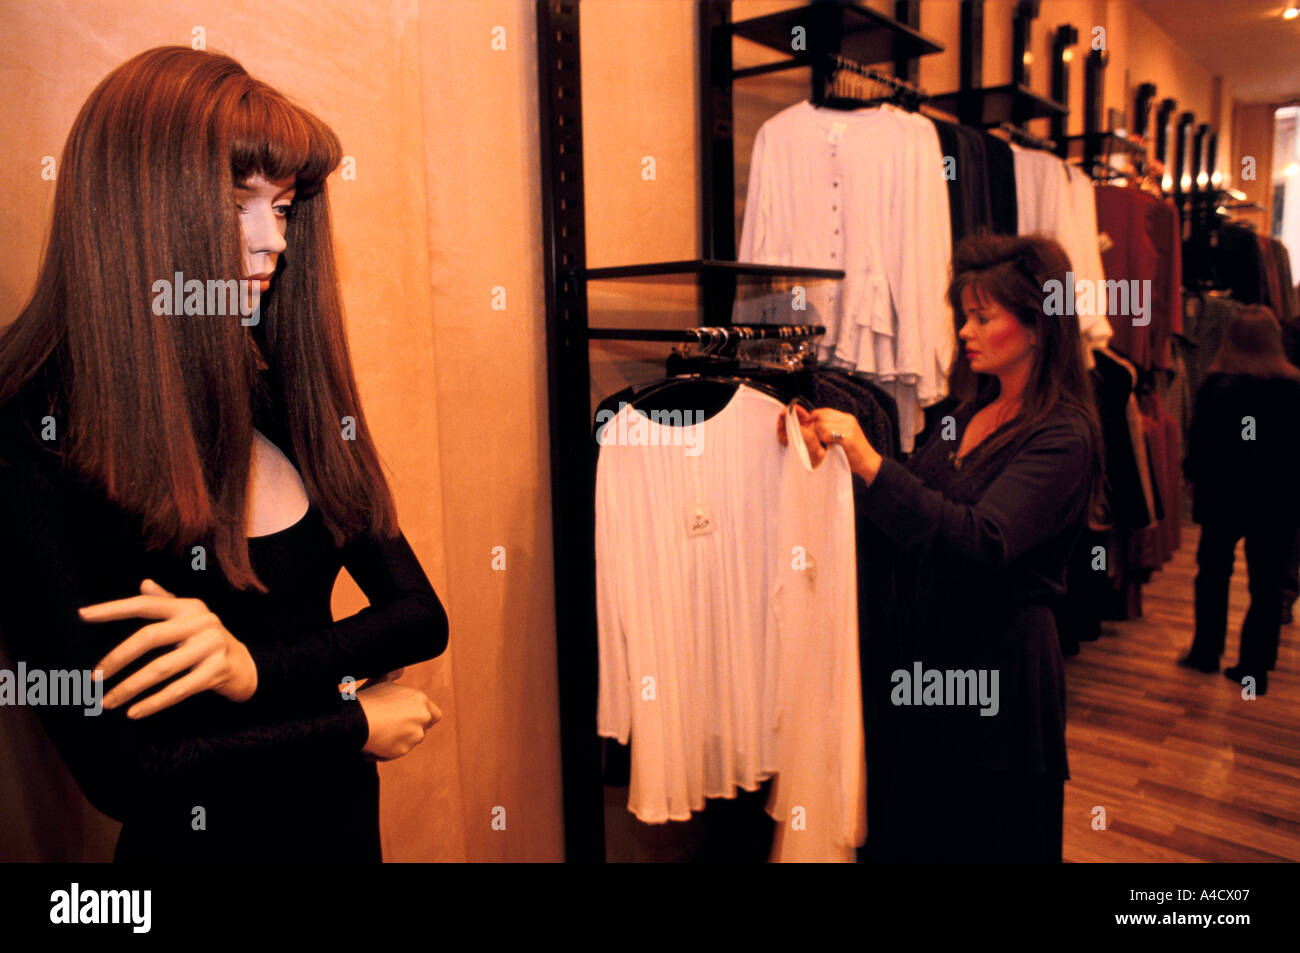 A lifelike manaquin stands in a self-absorbed pose as a women shops in a clothing store at the Lakeside Shopping Centre, Kent - Stock Image